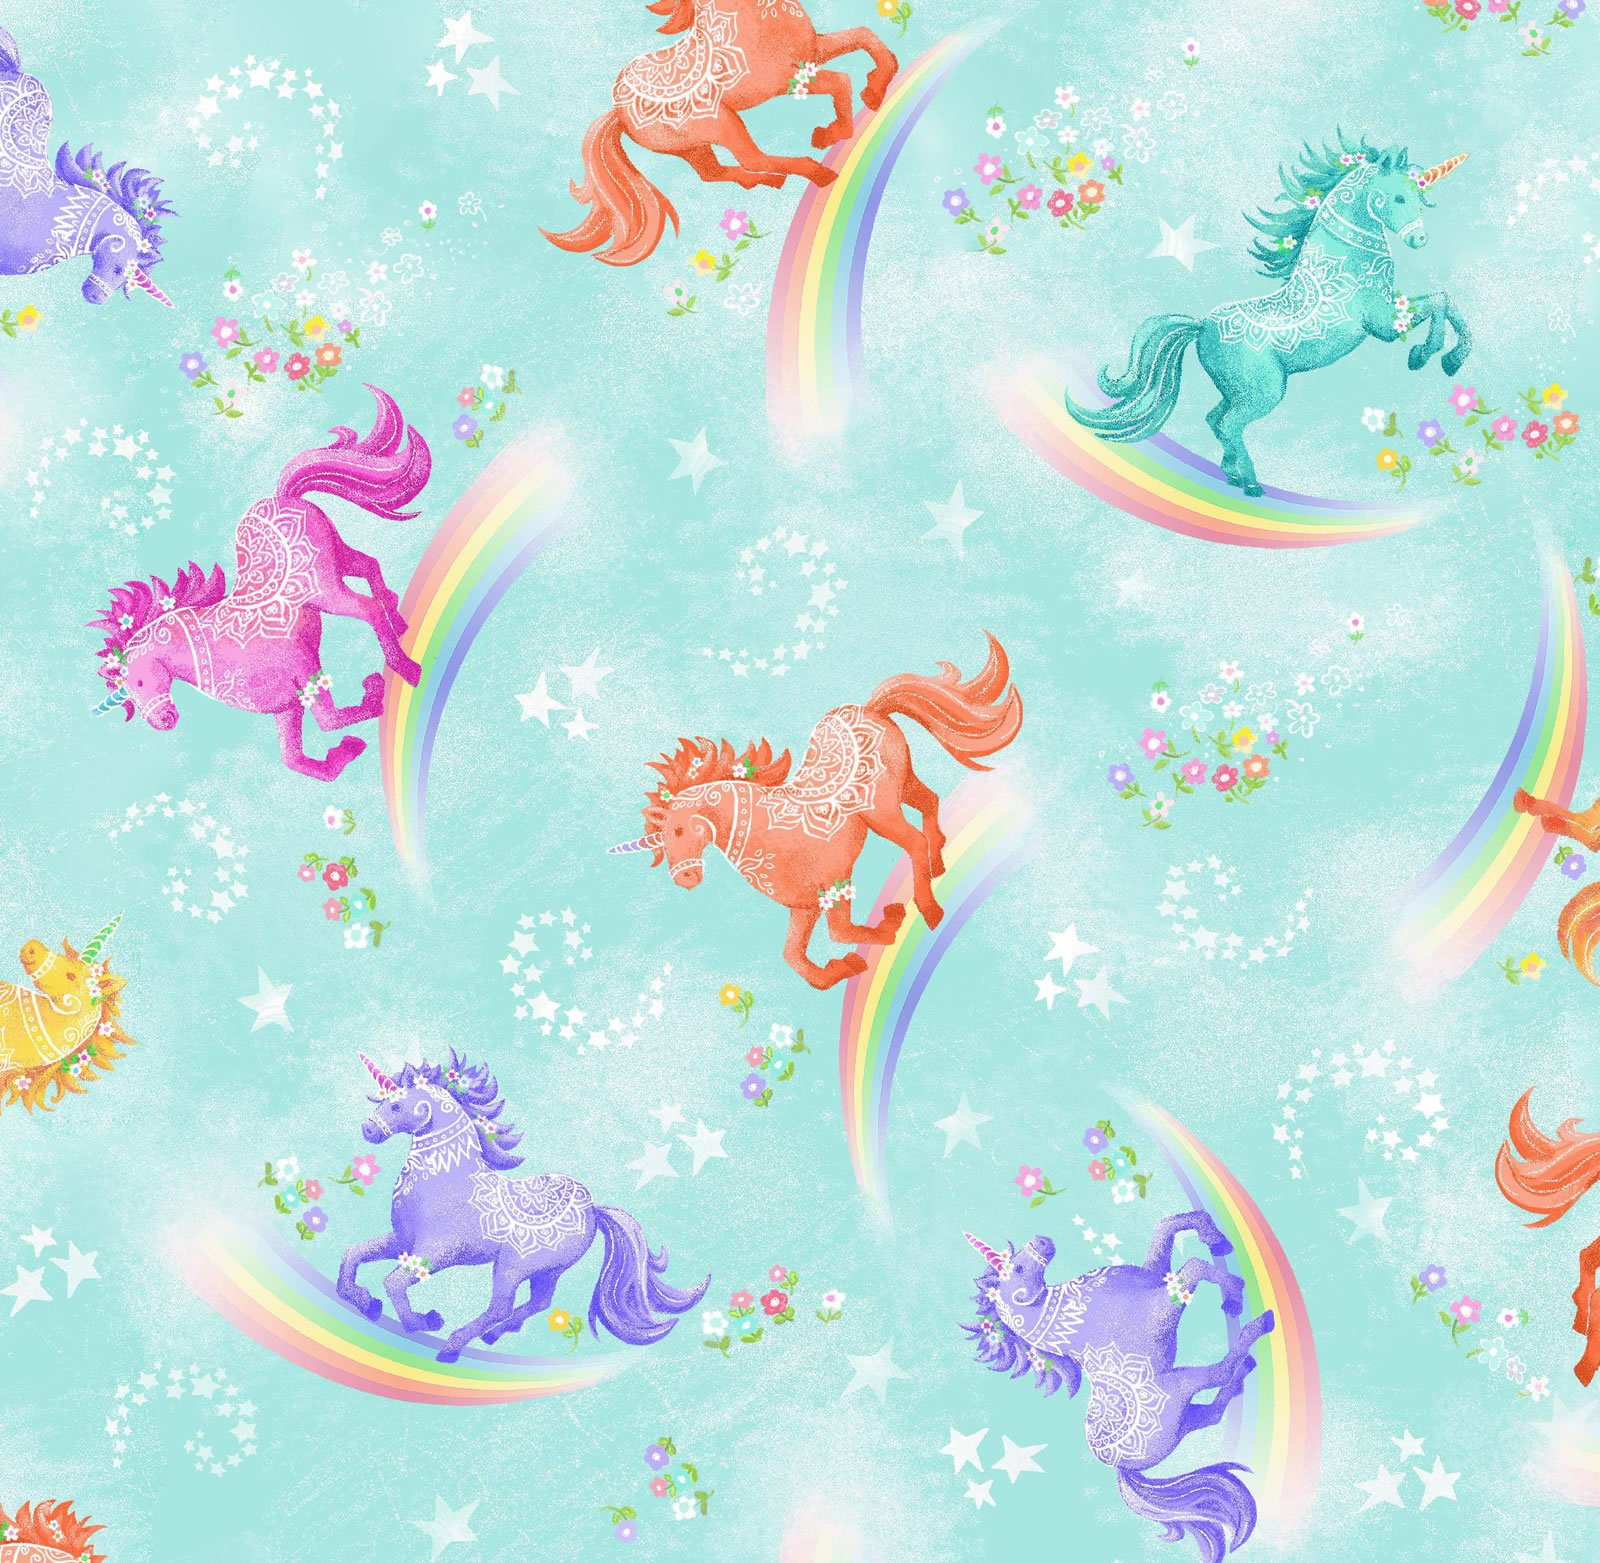 OF-Fun Flannels (2) 44-3181 Aqua - Unicorns